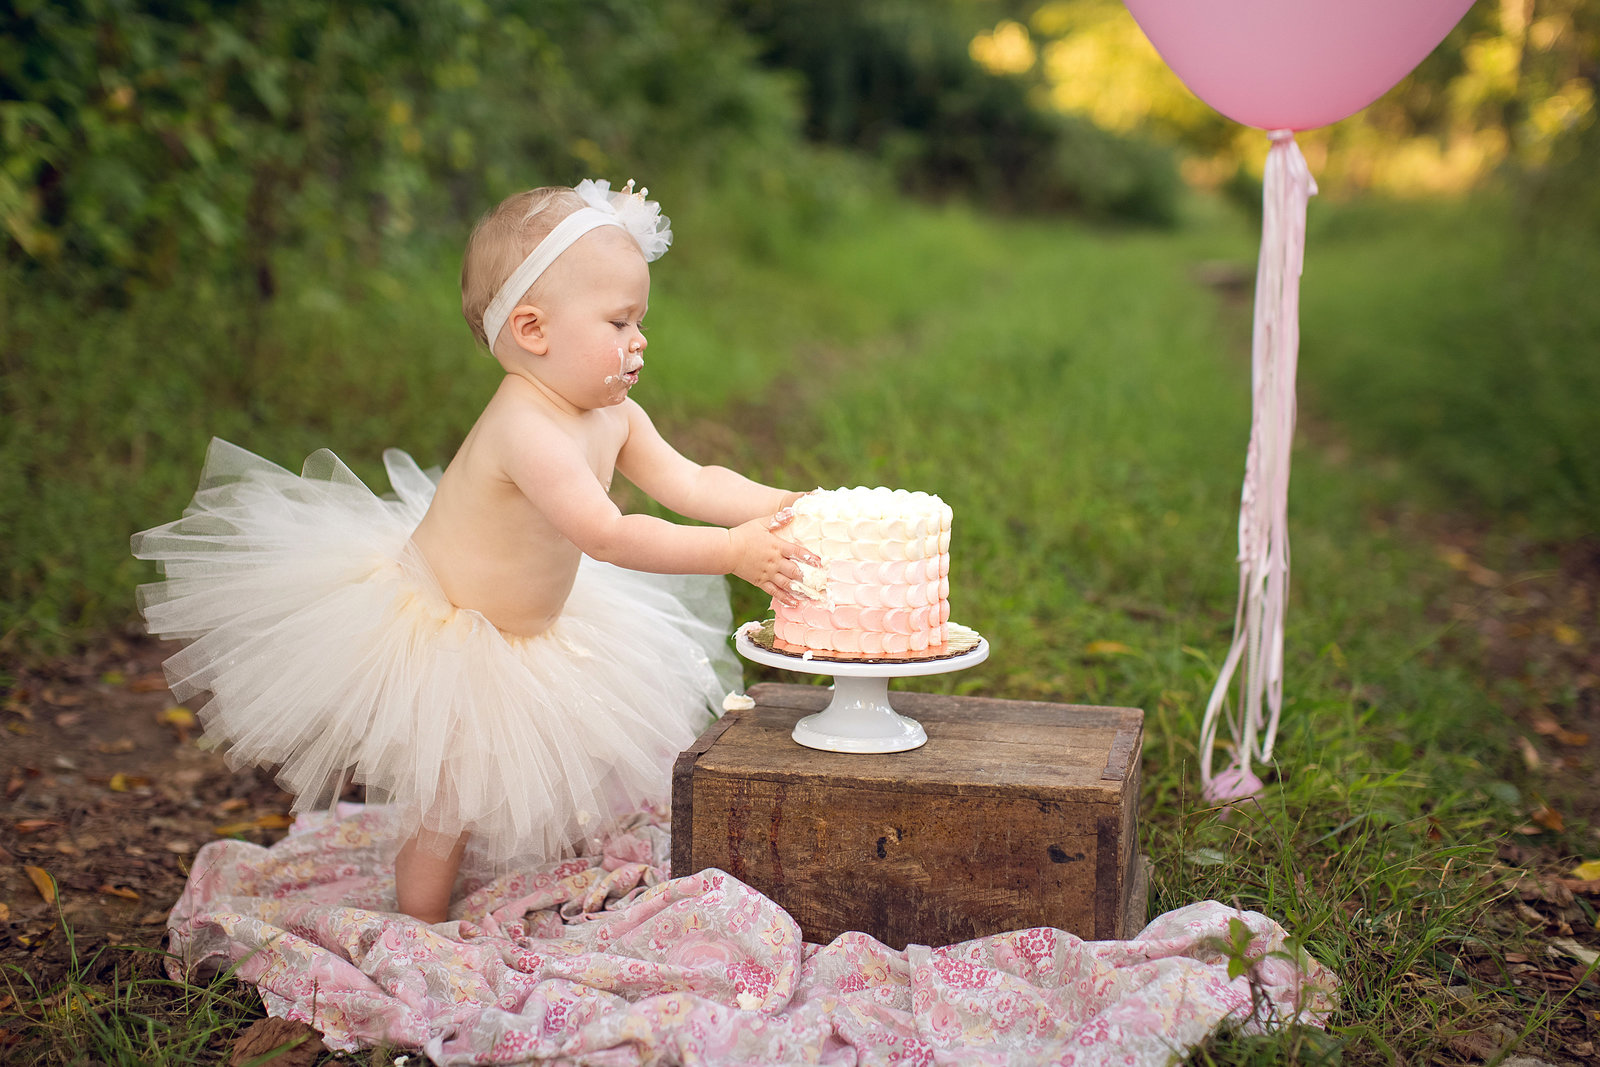 birthday girl in tutu reaches for cake